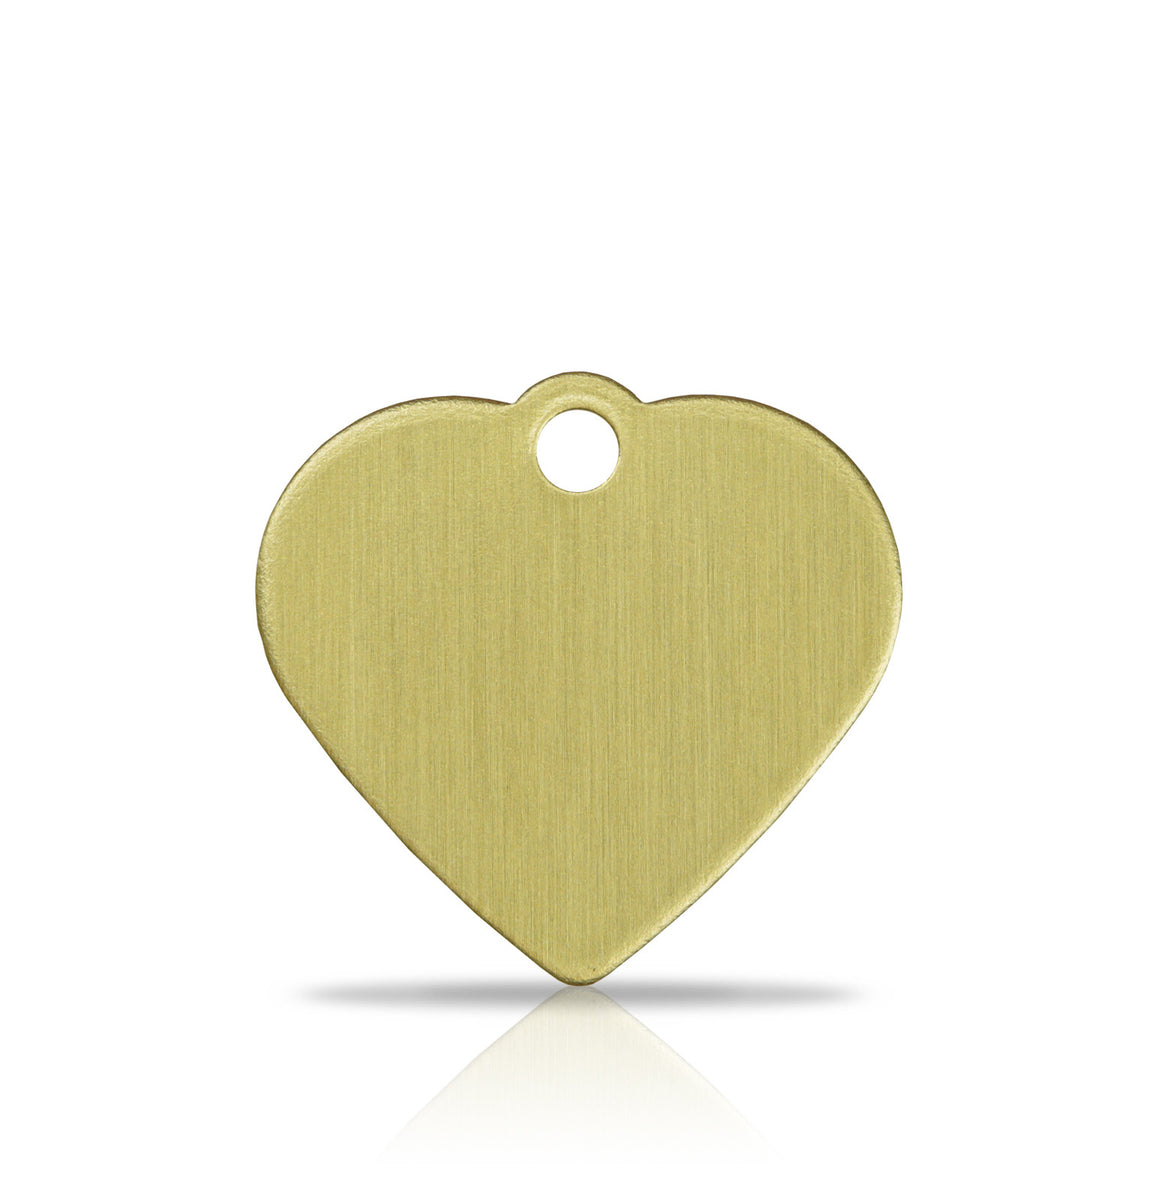 TaggIT Brass Series Small Heart Dog Tag Pet Tag iMarc Tag